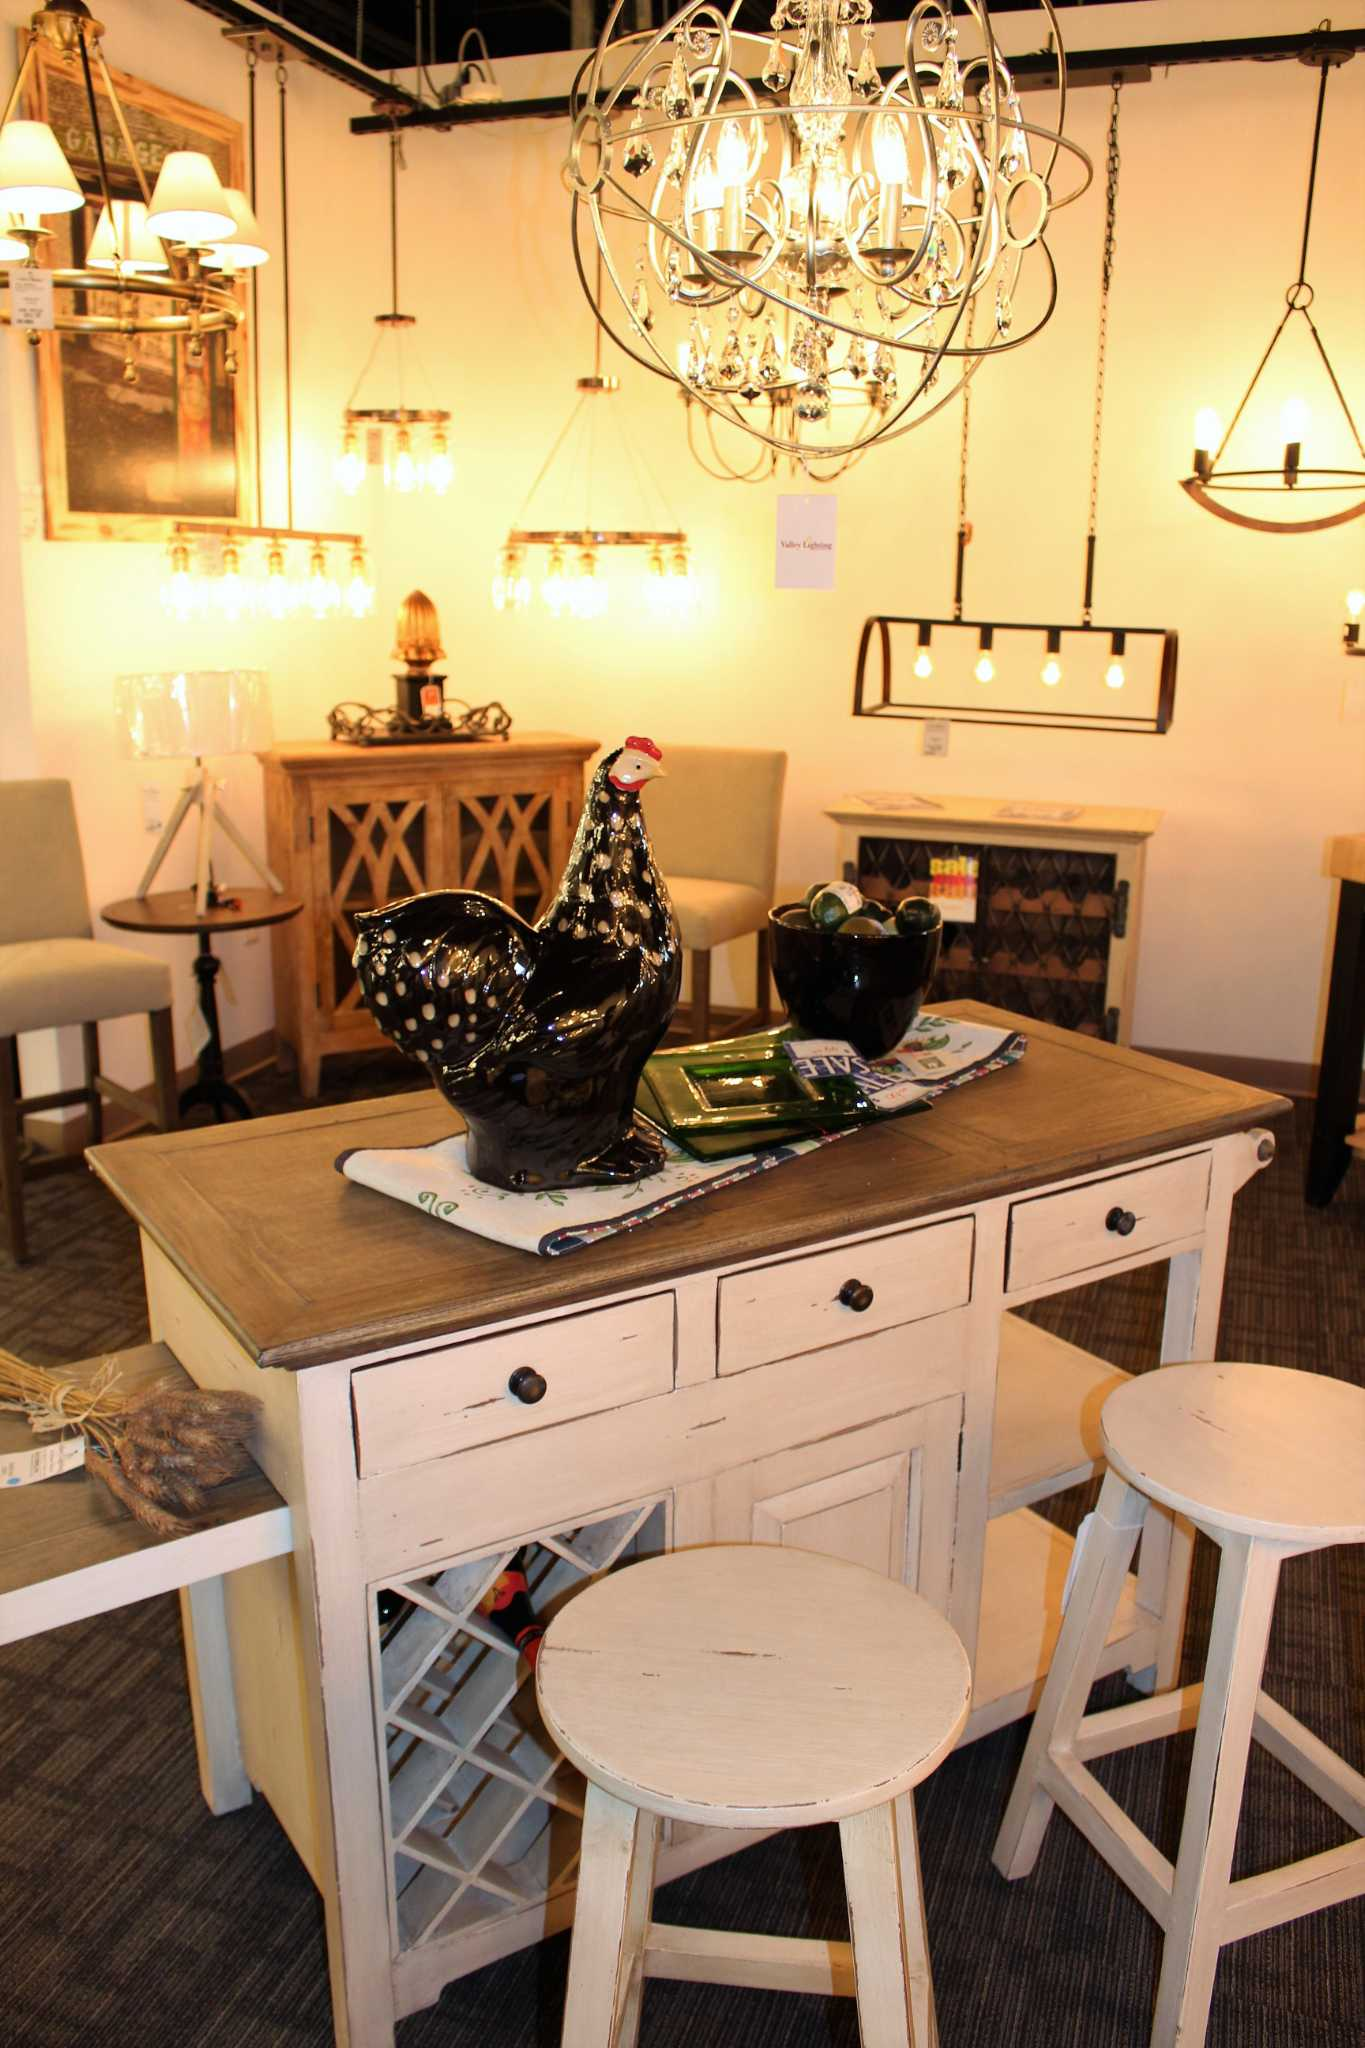 Valley Lighting And Home Décor Celebrates Grand Reopening In